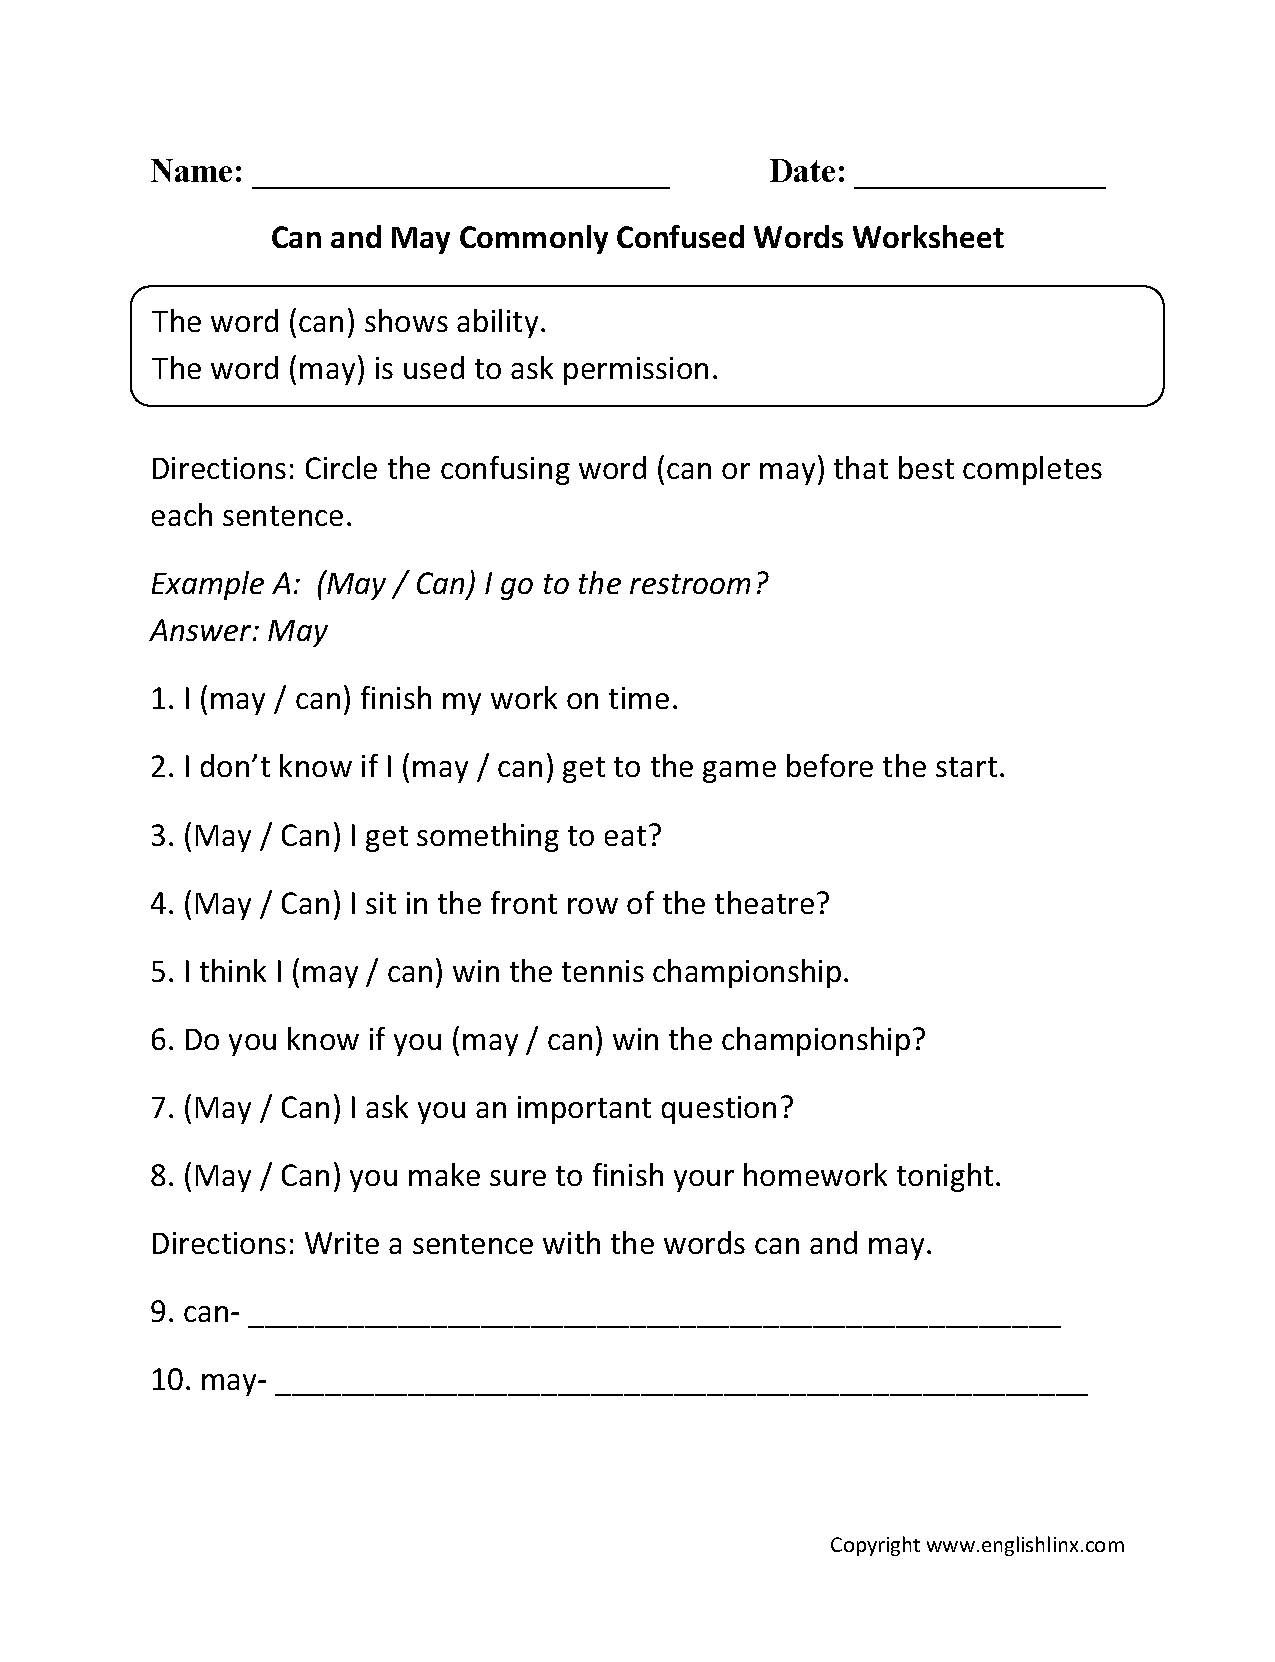 Can And May Commonly Confused Words Worksheets Recetas Que Cocinar